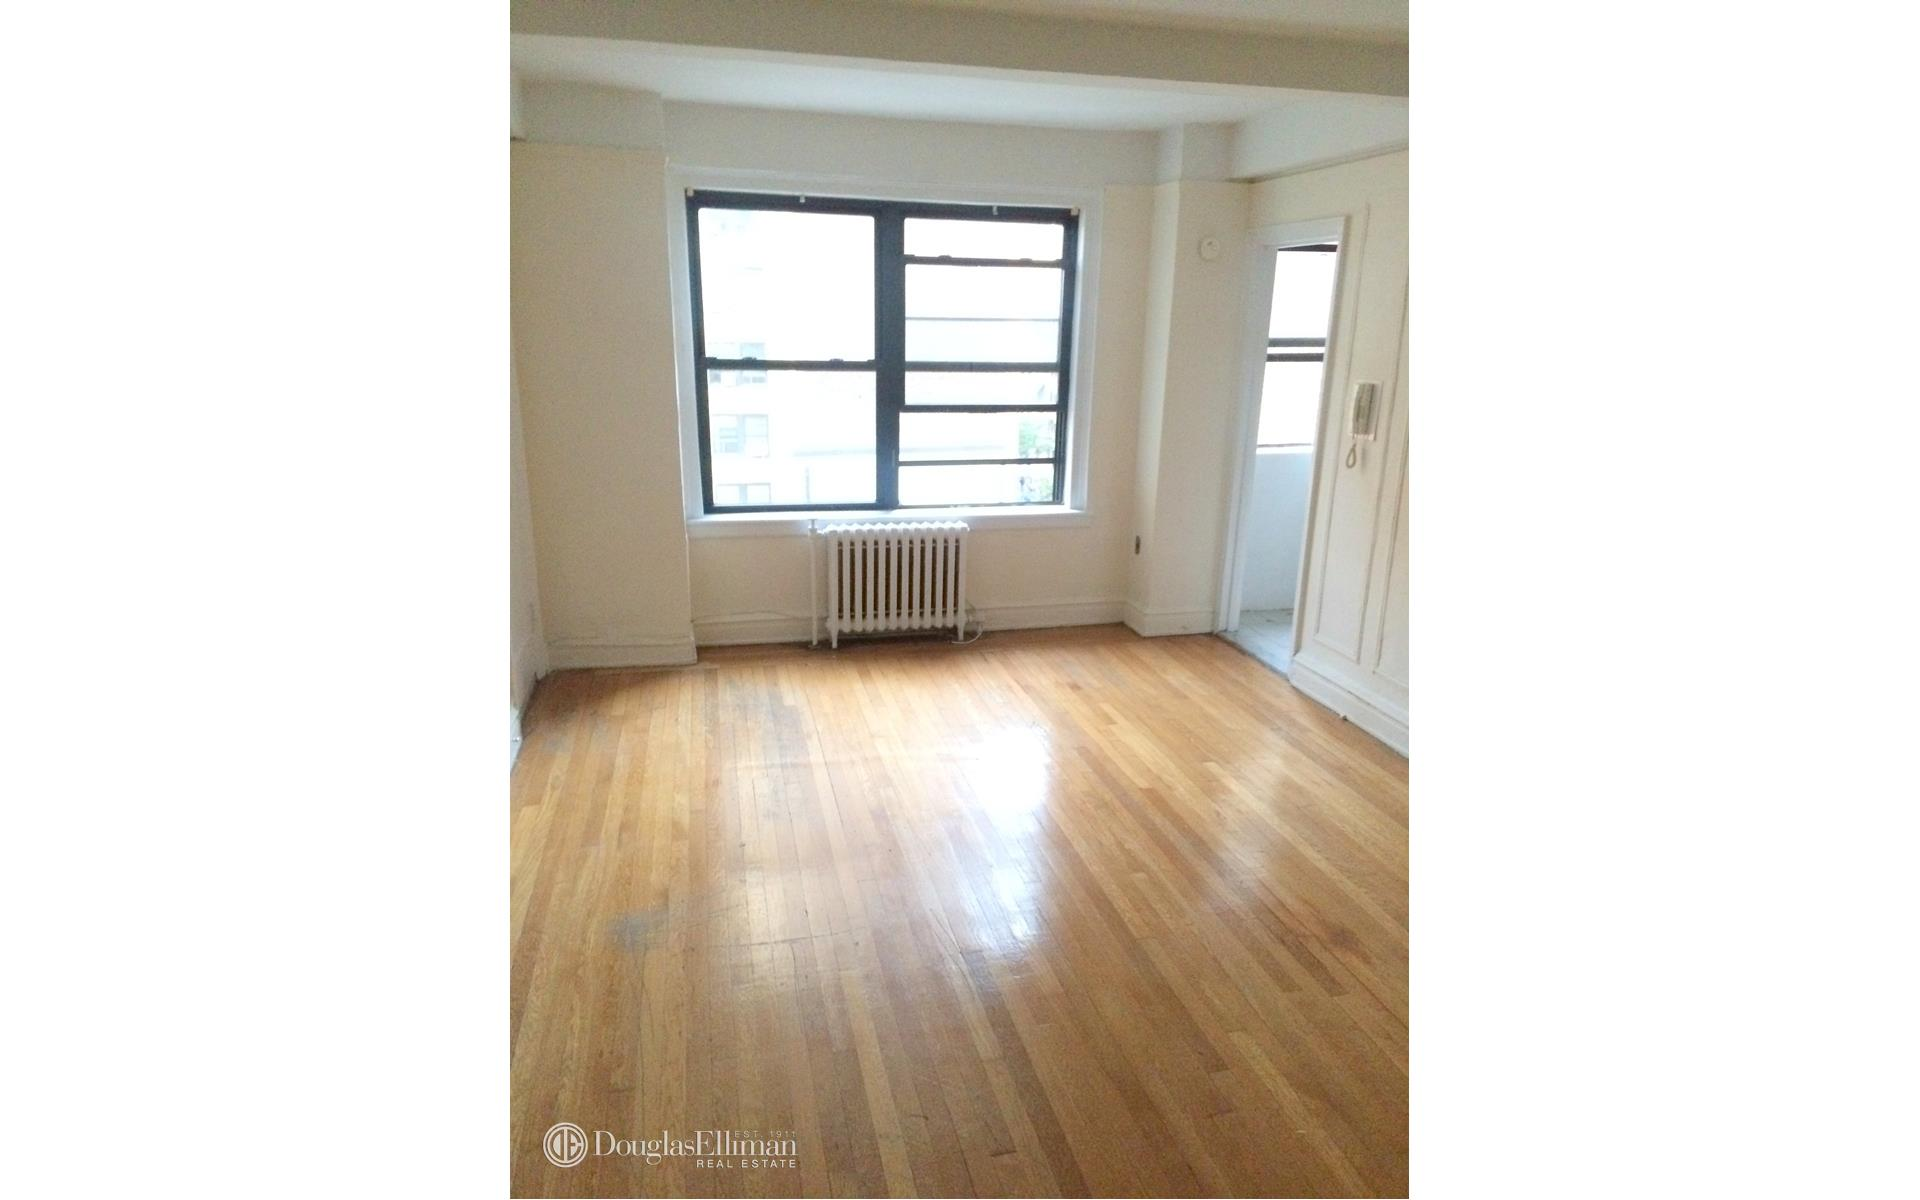 Hell 39 s kitchen 1 bedroom rental at 455 w 34 st new york for Hell s kitchen nyc apartments